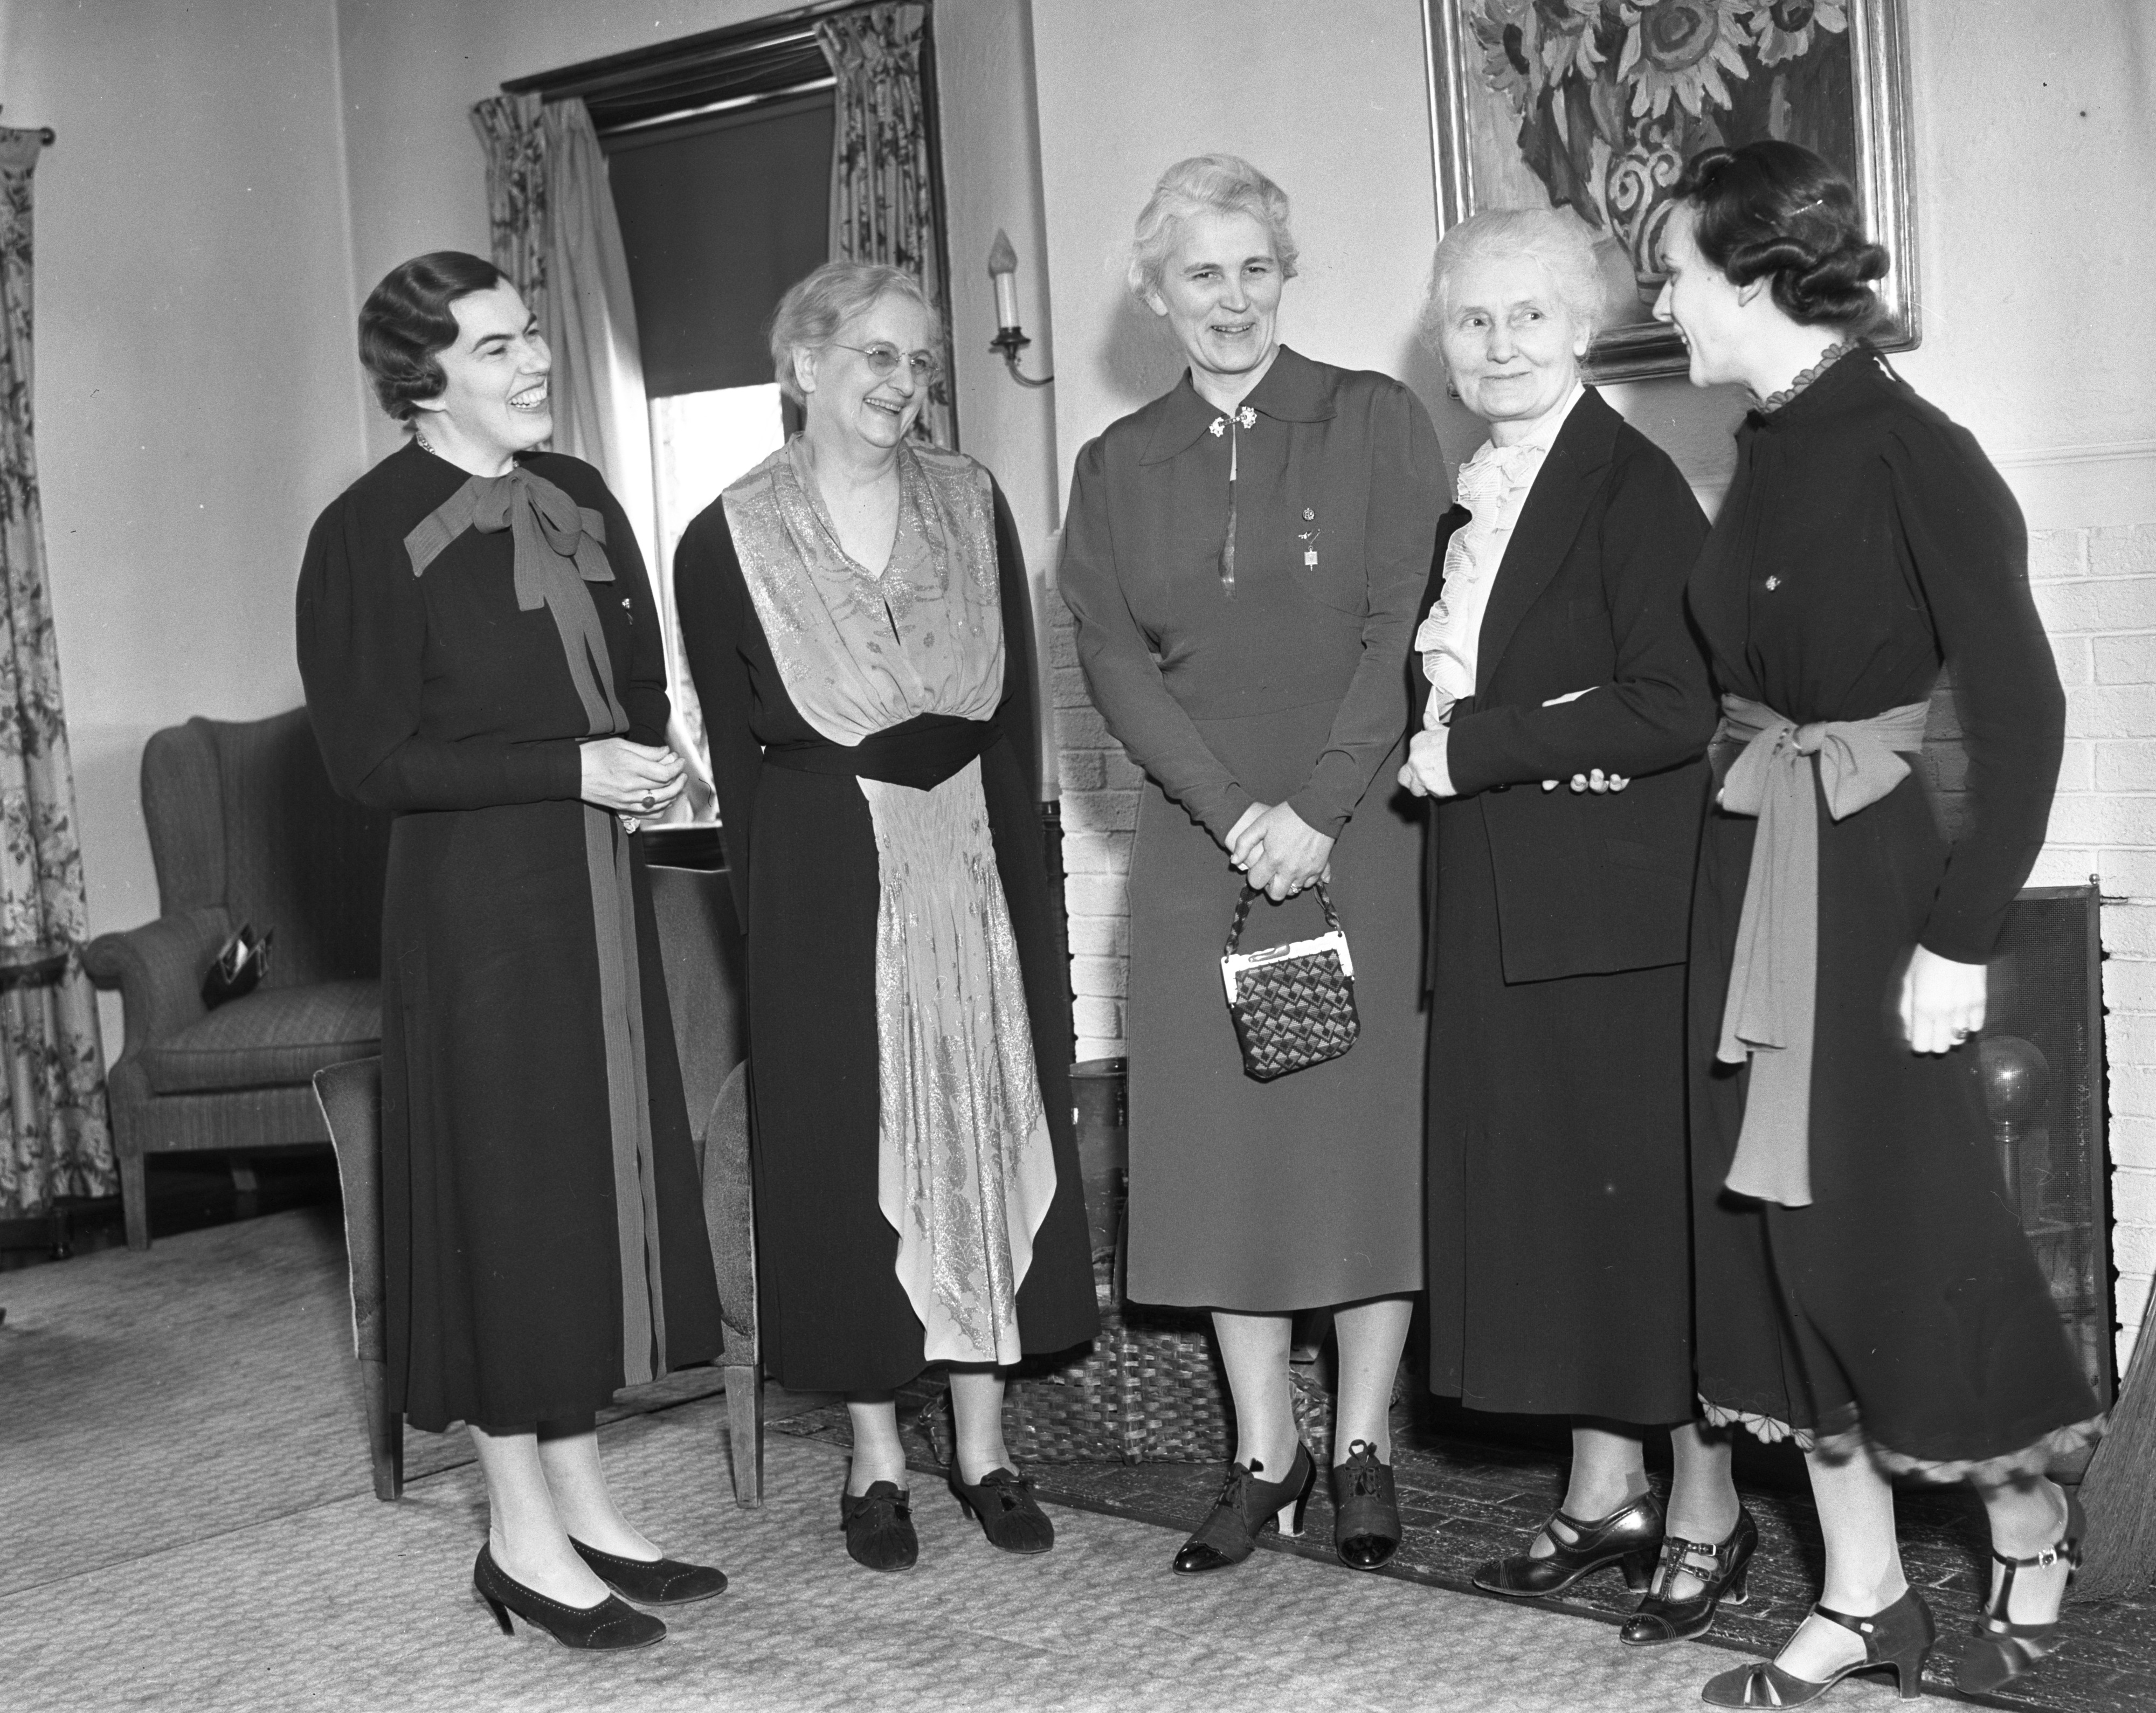 Gamma Phi Beta's Regional Conference, March 21, 1937 image